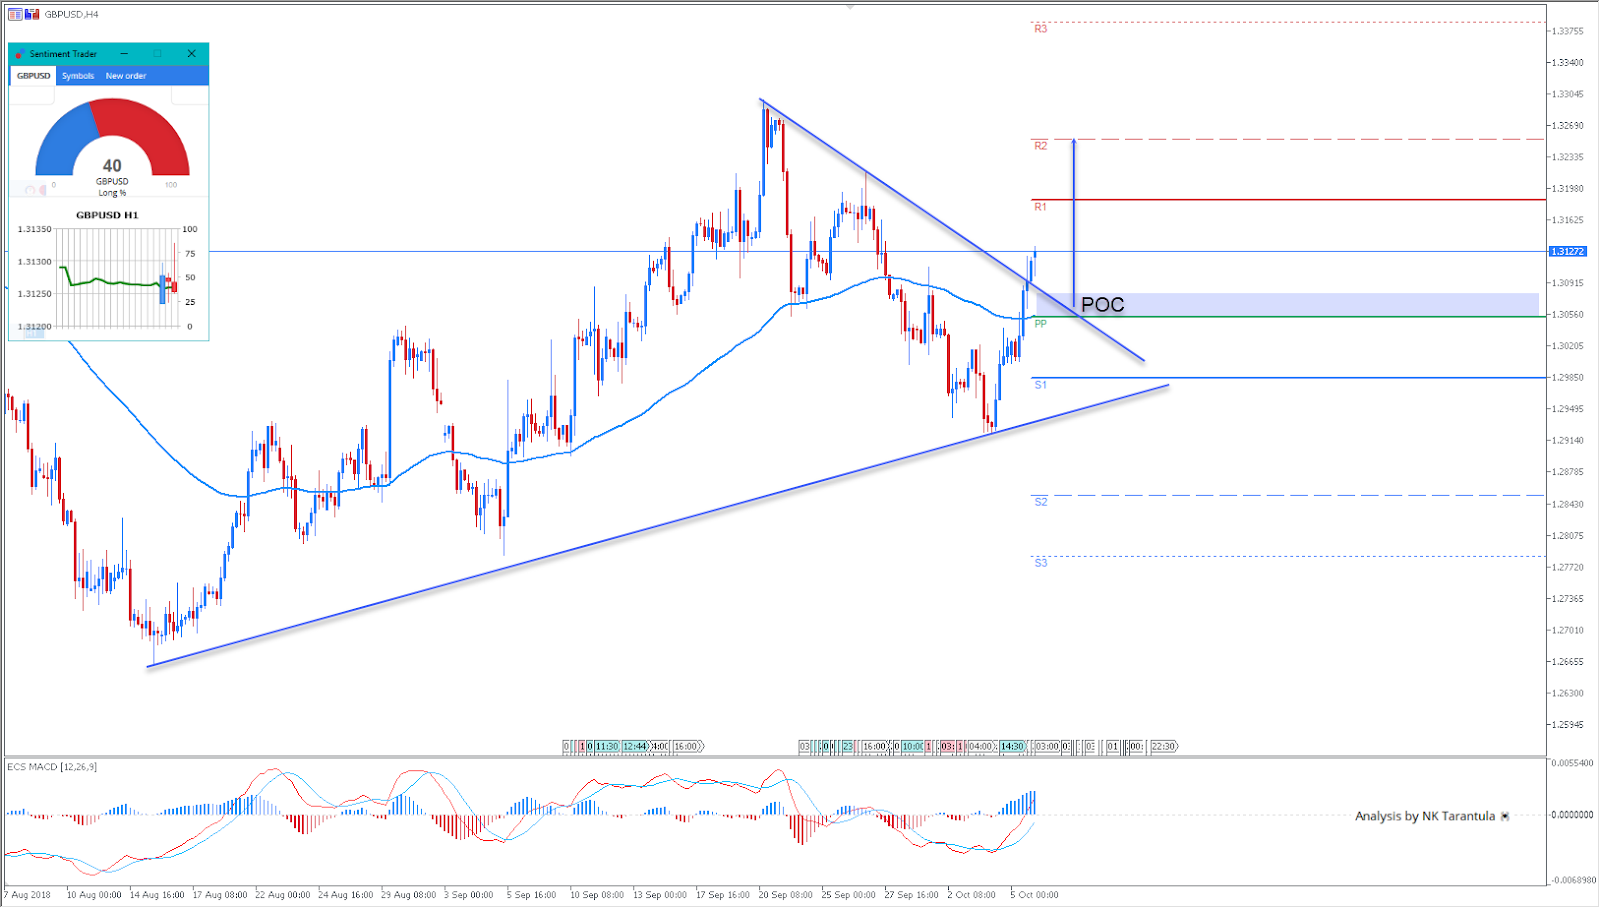 GBPUSD Hourly Chart - Technical Analysis